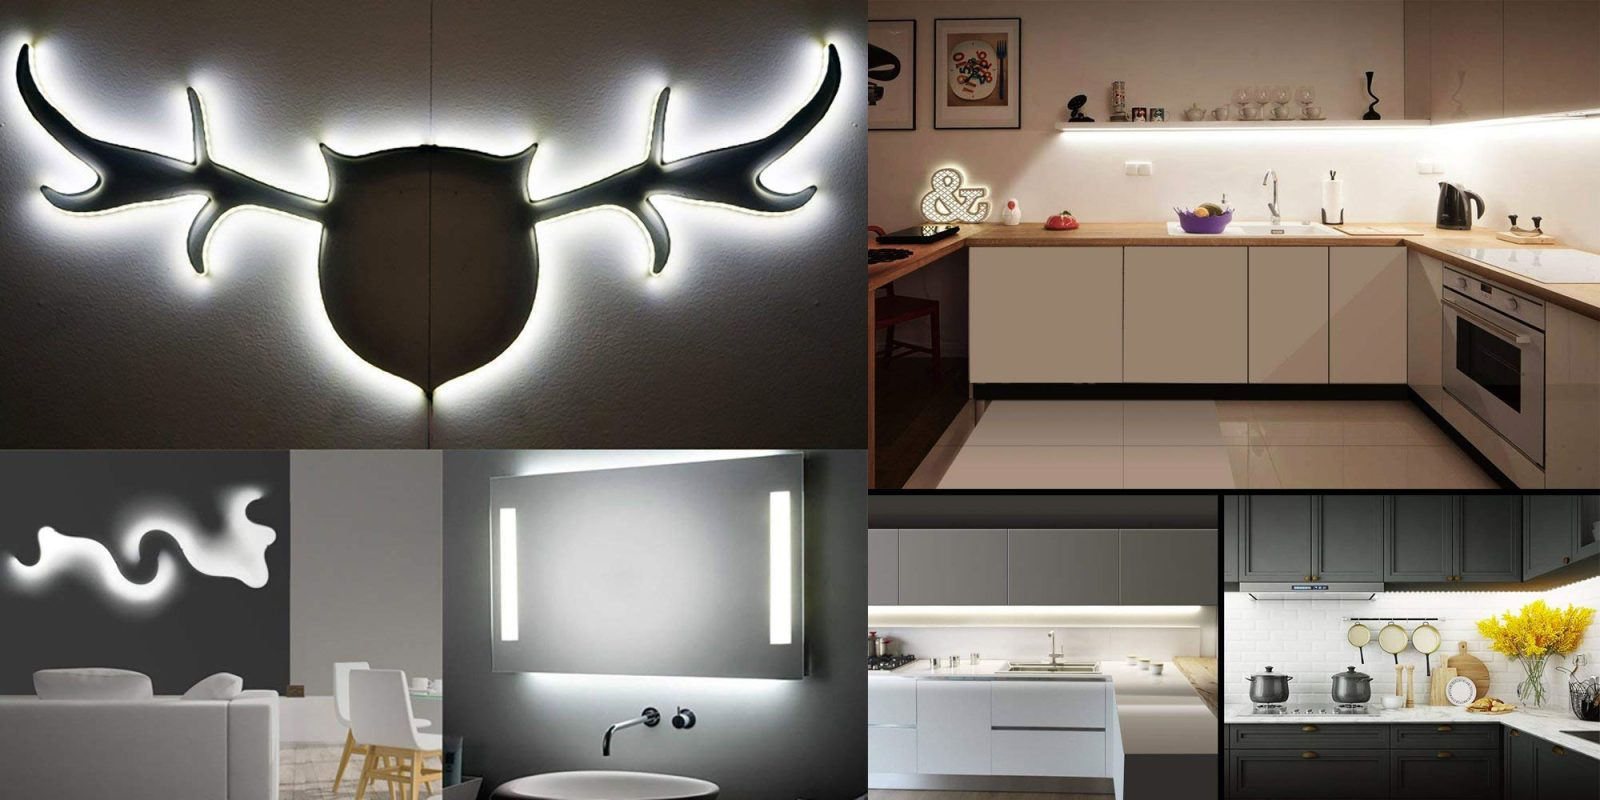 Add lighting anywhere in the house w this dimmable led light strip add lighting anywhere in the house w this dimmable led light strip for 9 prime shipped aloadofball Images